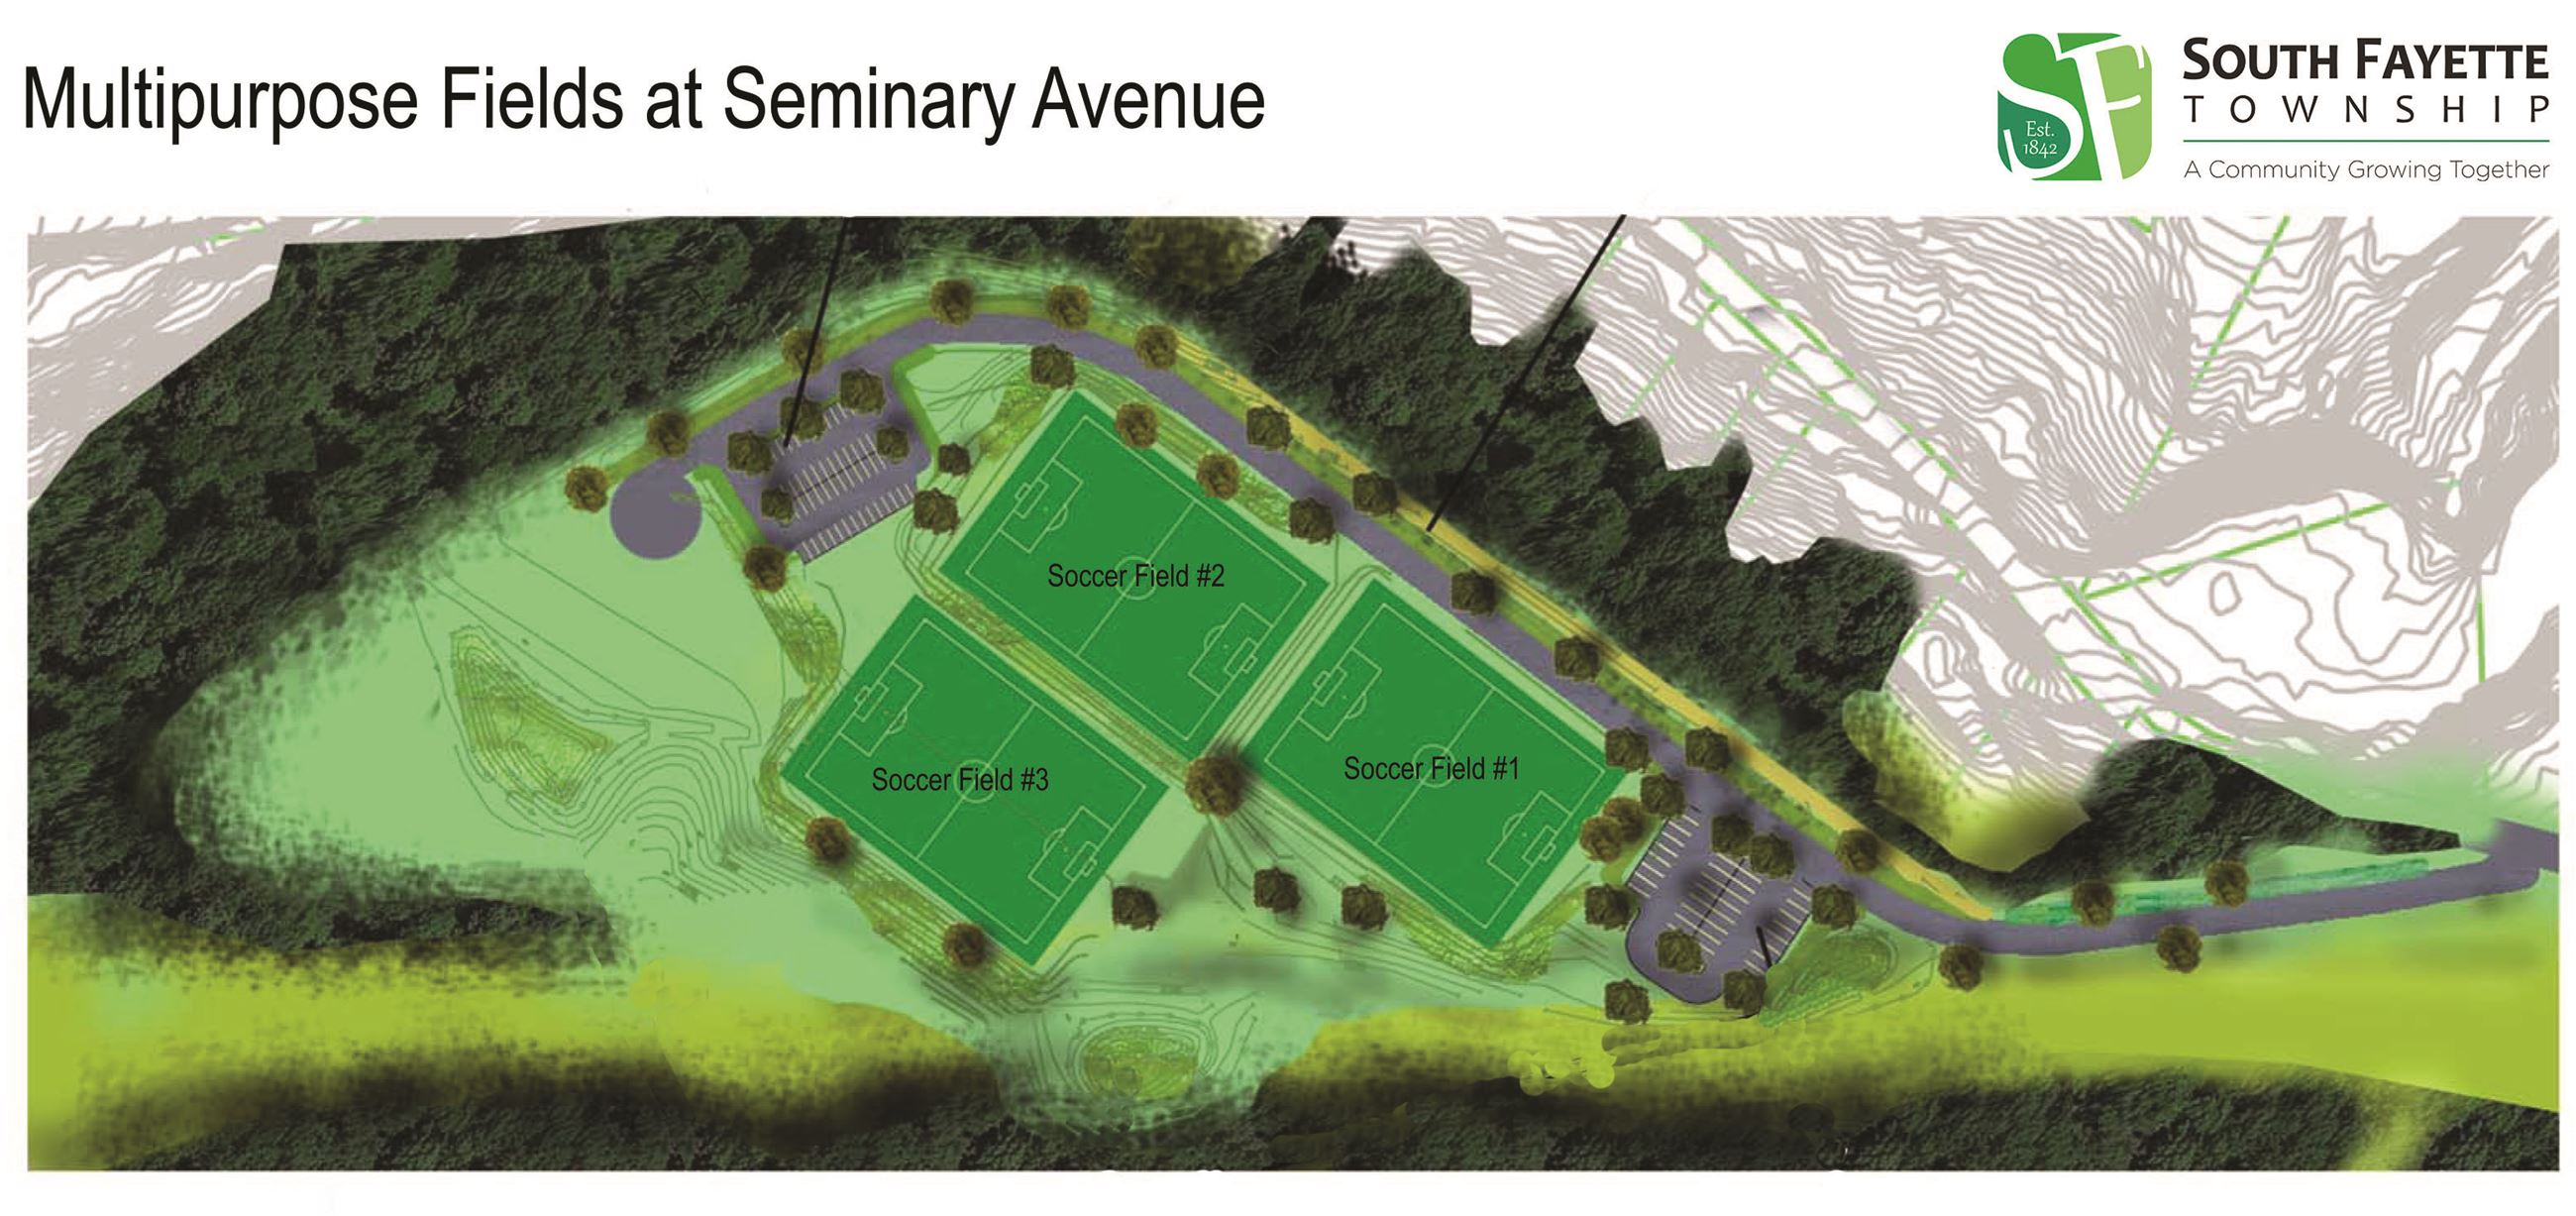 RENDERING SFTWP MULTIPURPOSE FIELDS